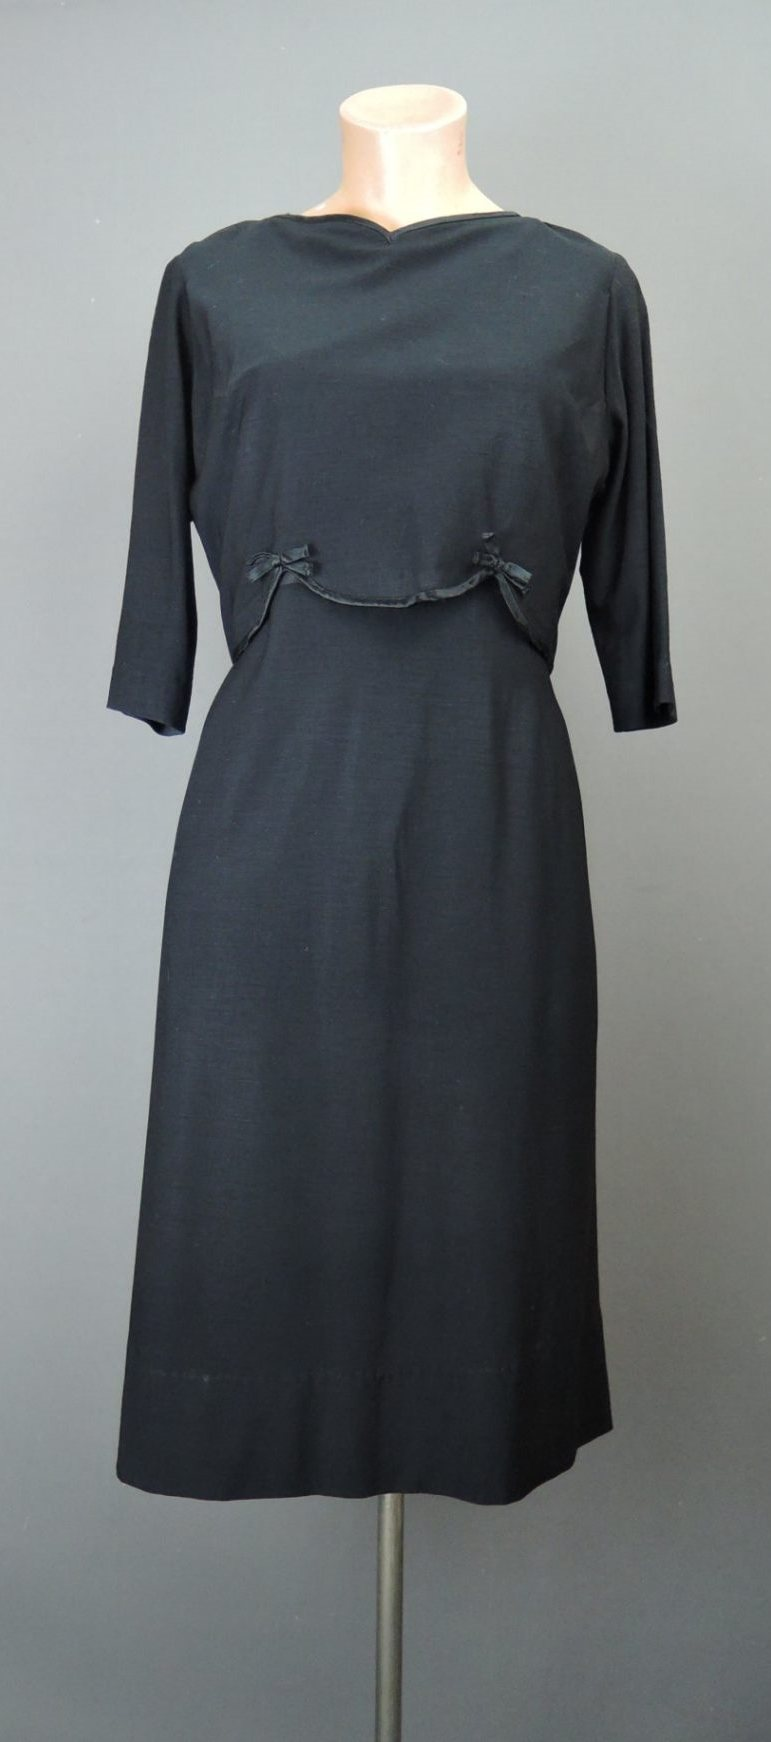 Vintage Black Dress with Ribbon Trim 1960s, fits 36 bust, thin wool